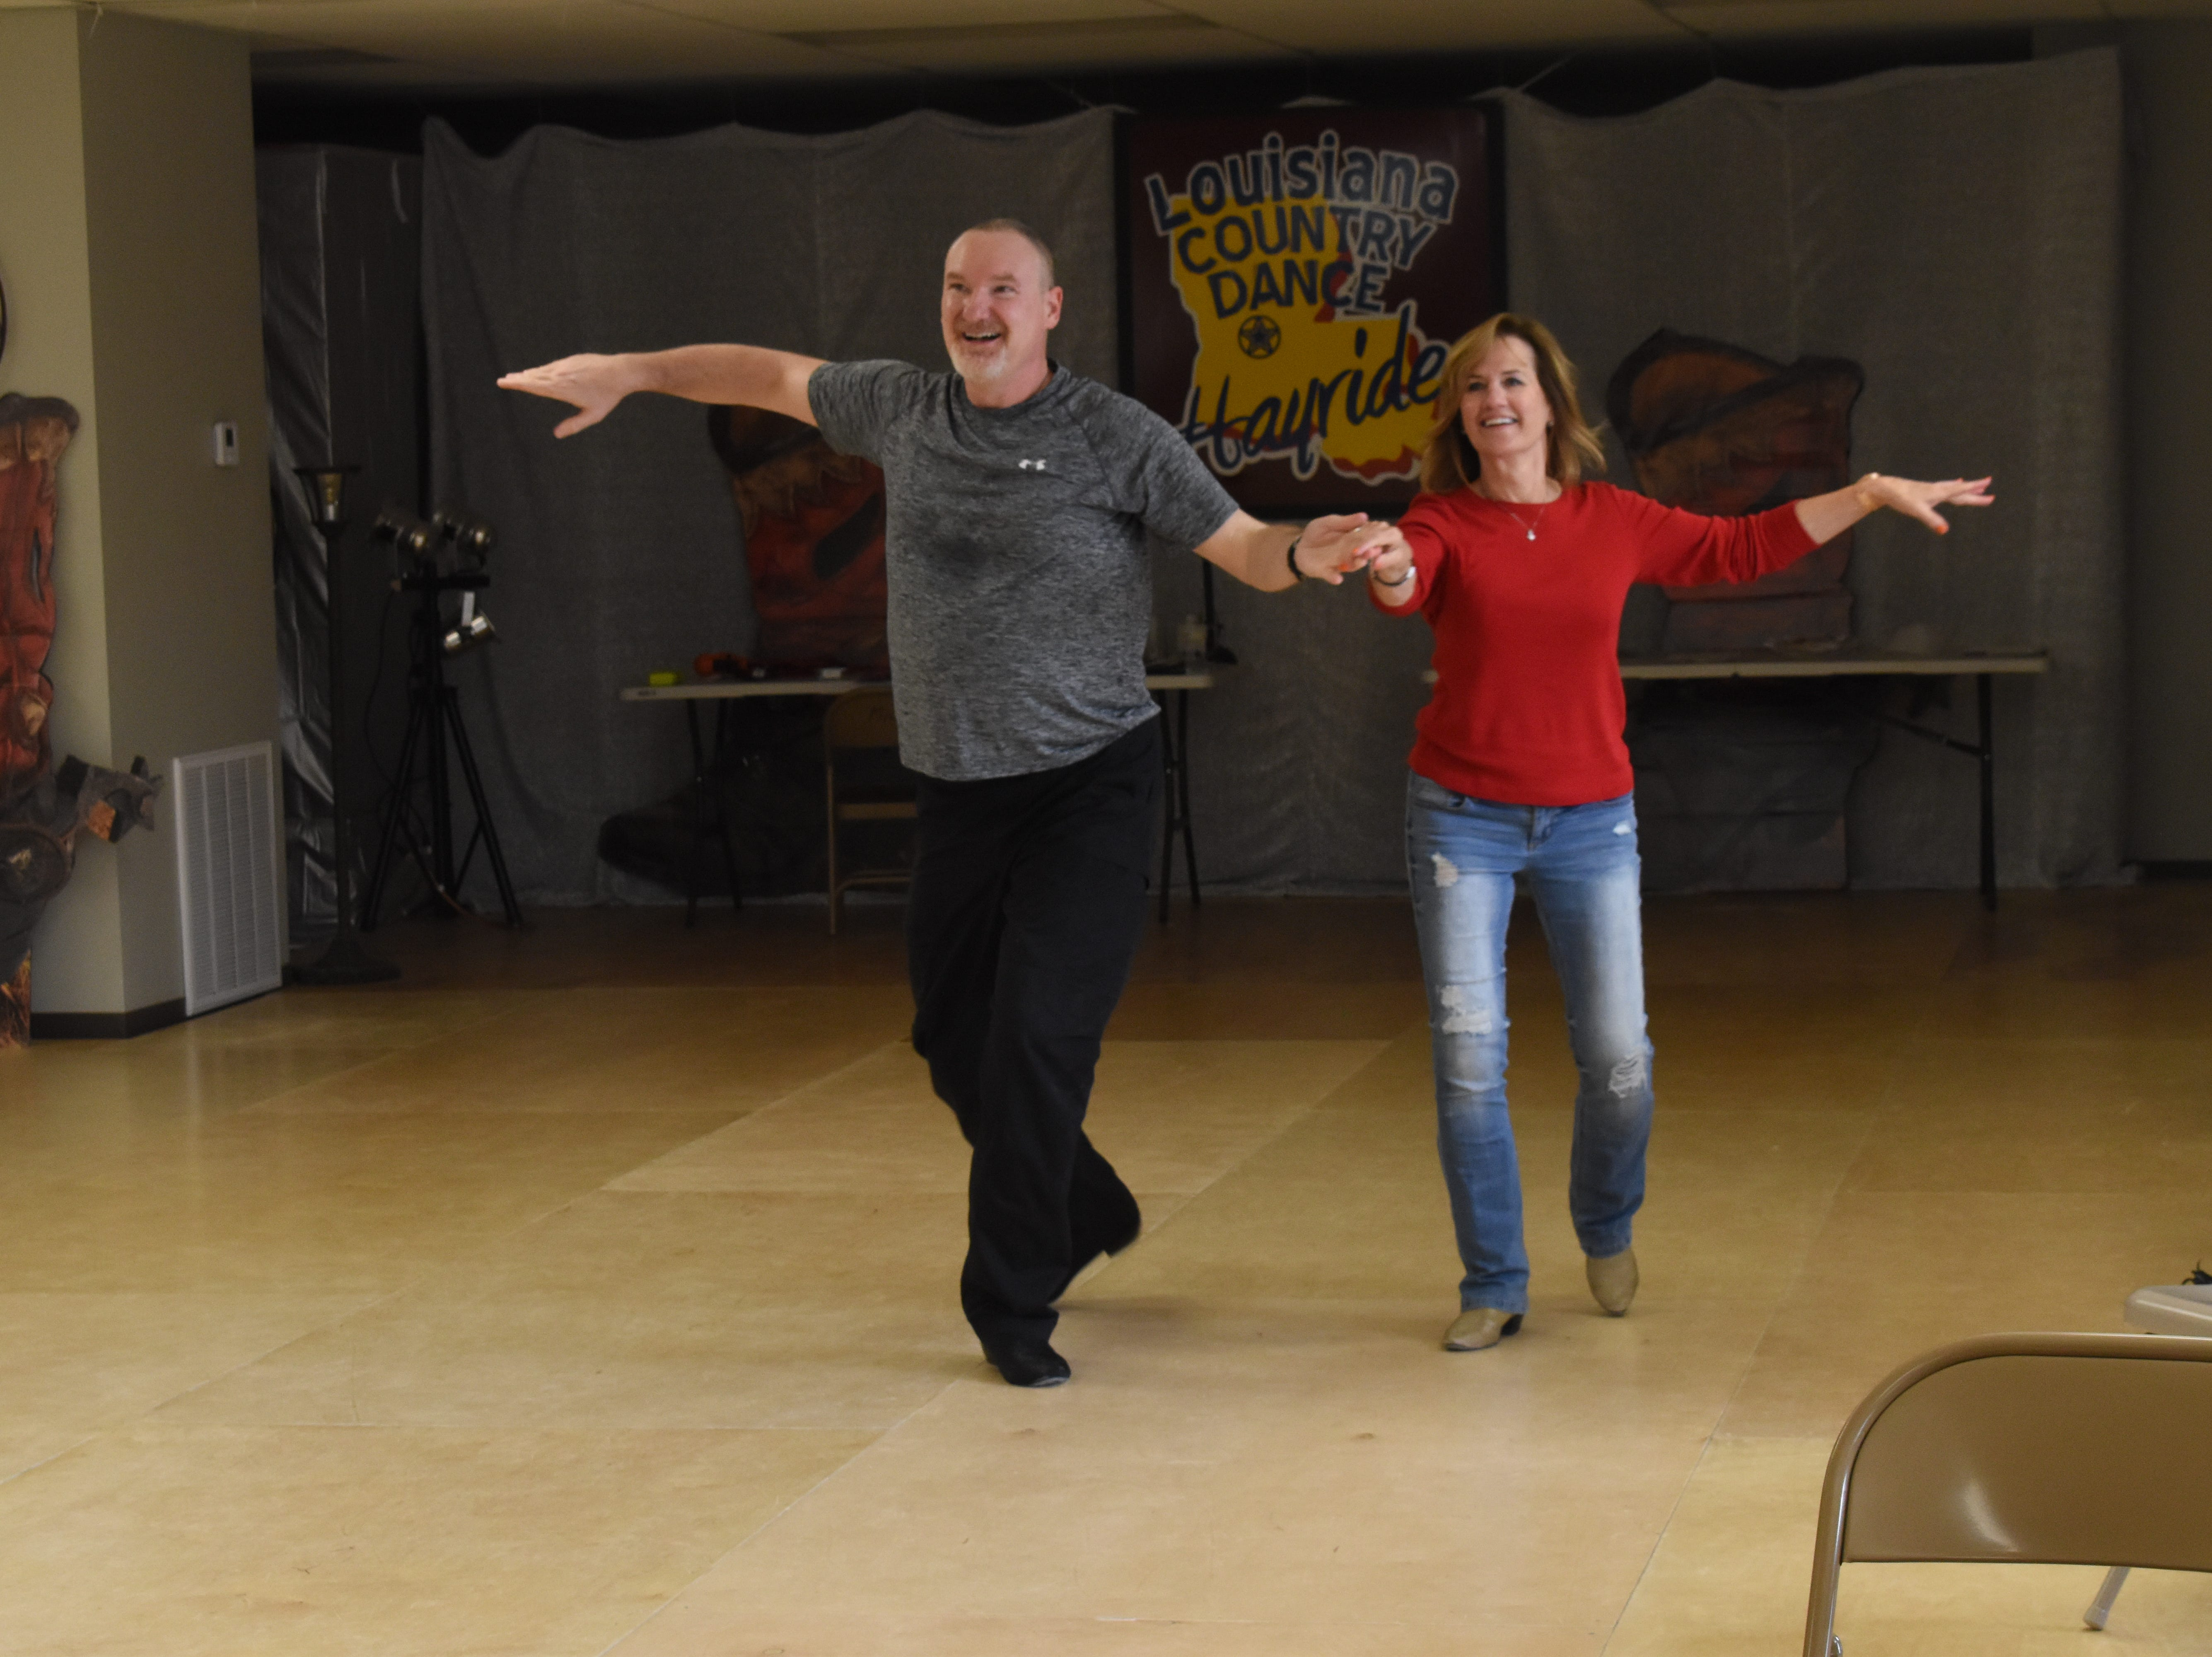 Lucky Stars Dance Studio dancers Lucky Stars Dance Studio dancers Carlyss Ducote and Bob Clanton practice a dance routine. The dancers will compete in the Louisiana Country Dance Hayride set for May 2-5 at the Best Western in Alexandria. This will be the 12th year the Louisiana Country Dance Hayride has been on the American Country Dance Association circuit. For more information about their events, visit www.lacountrydancehayride.com or the Louisiana Country Dance Hayride Facebook page.